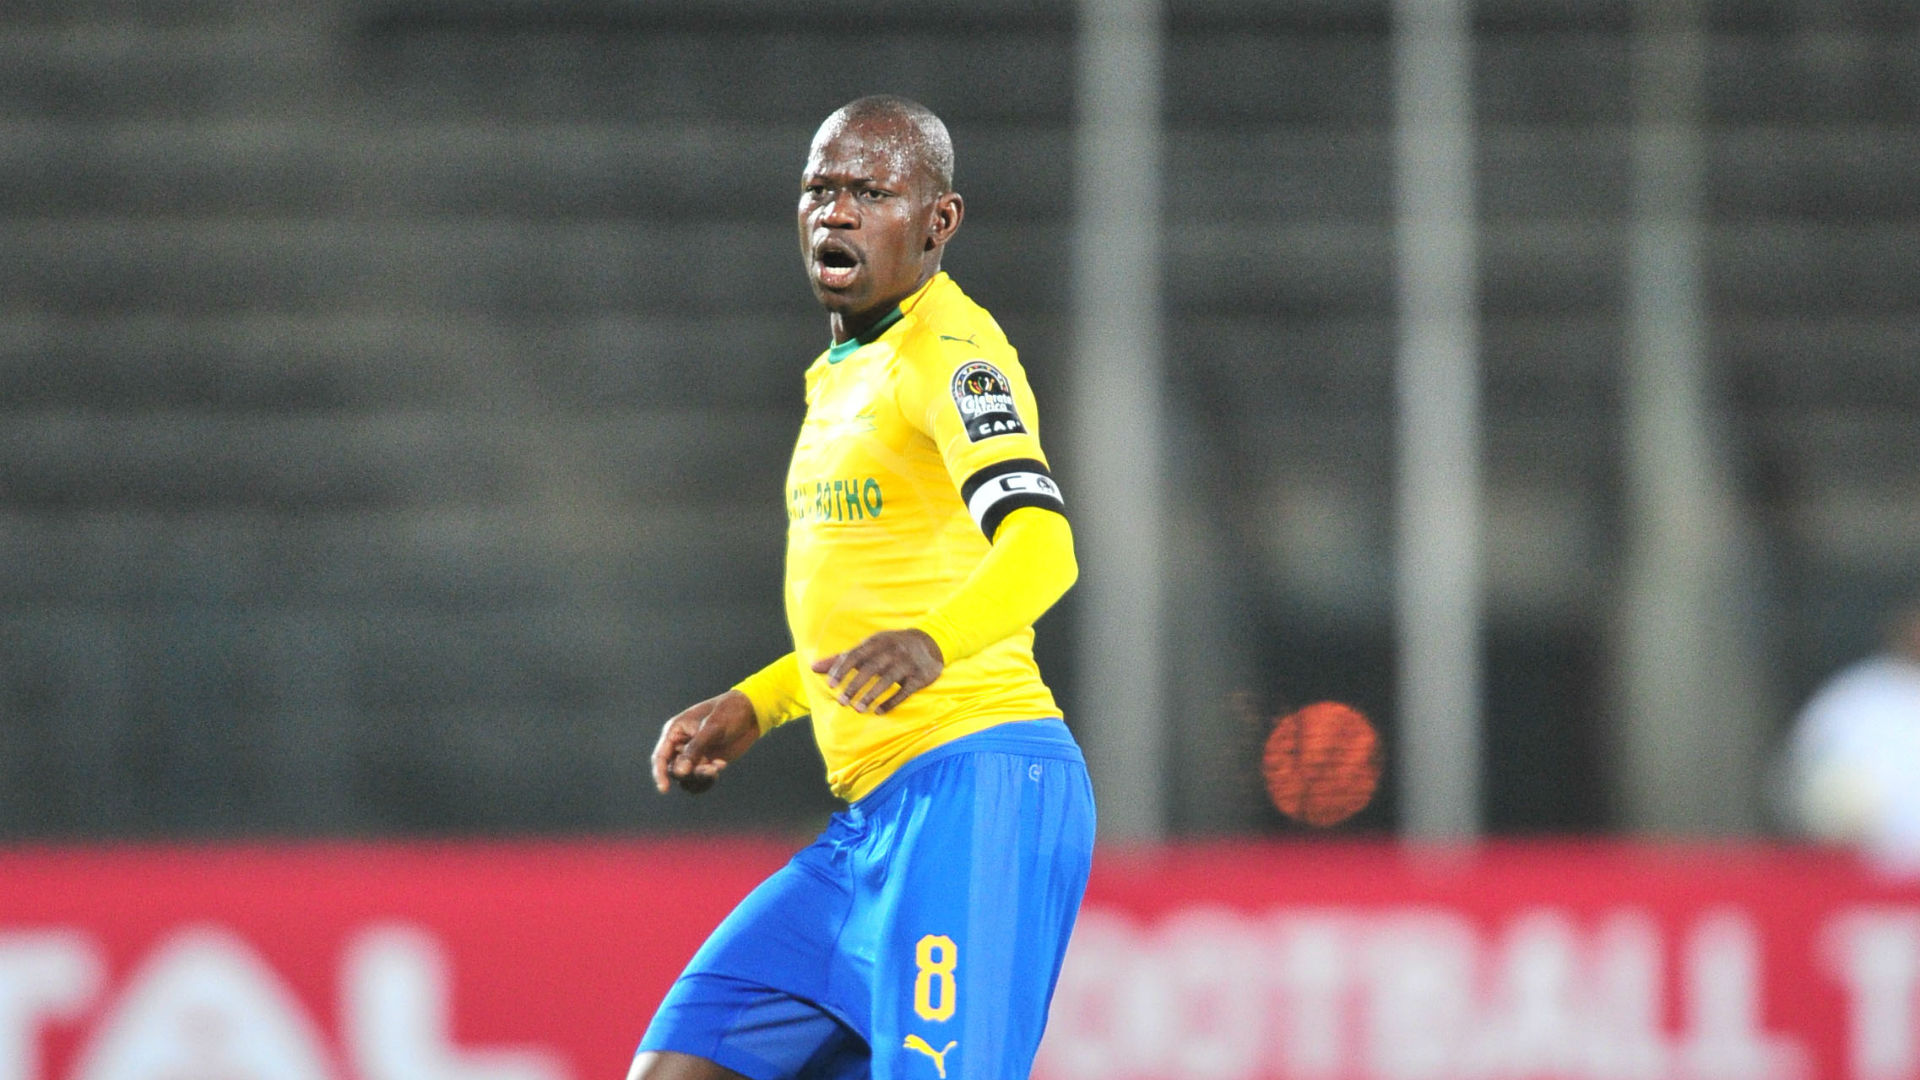 Hlompho Kekana, Mamelodi Sundowns, July 2018